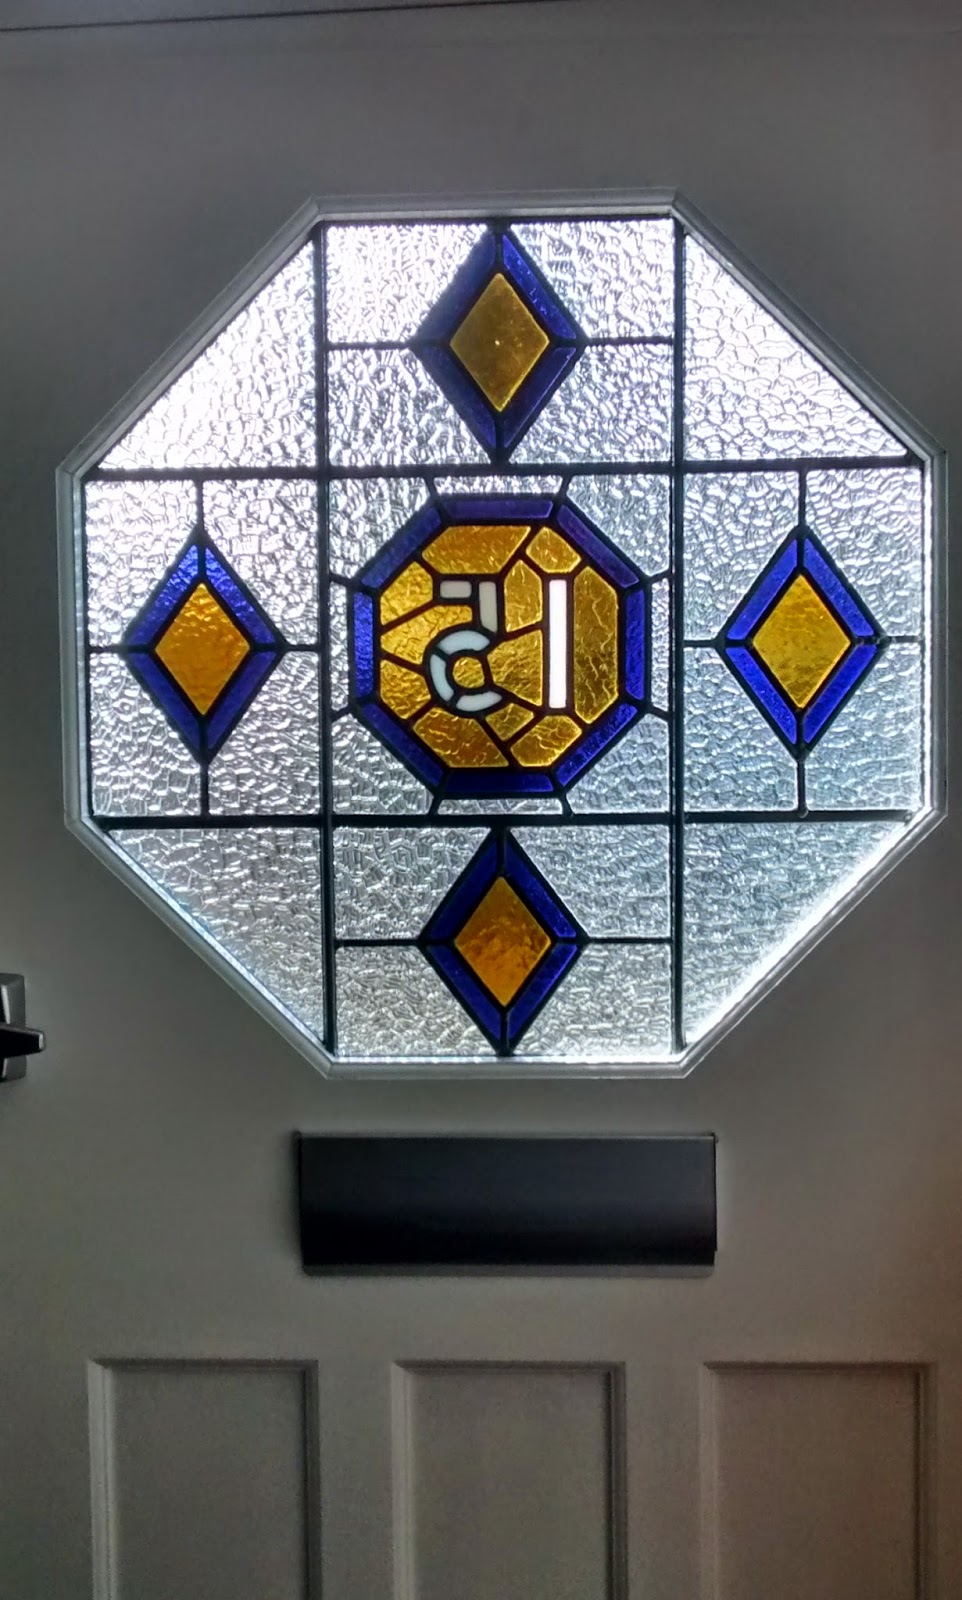 Stained glass for london and south east unusual octagonal door panel with number the client had a replacement door made to the original pattern we remove the stained glass from the old door eventelaan Gallery